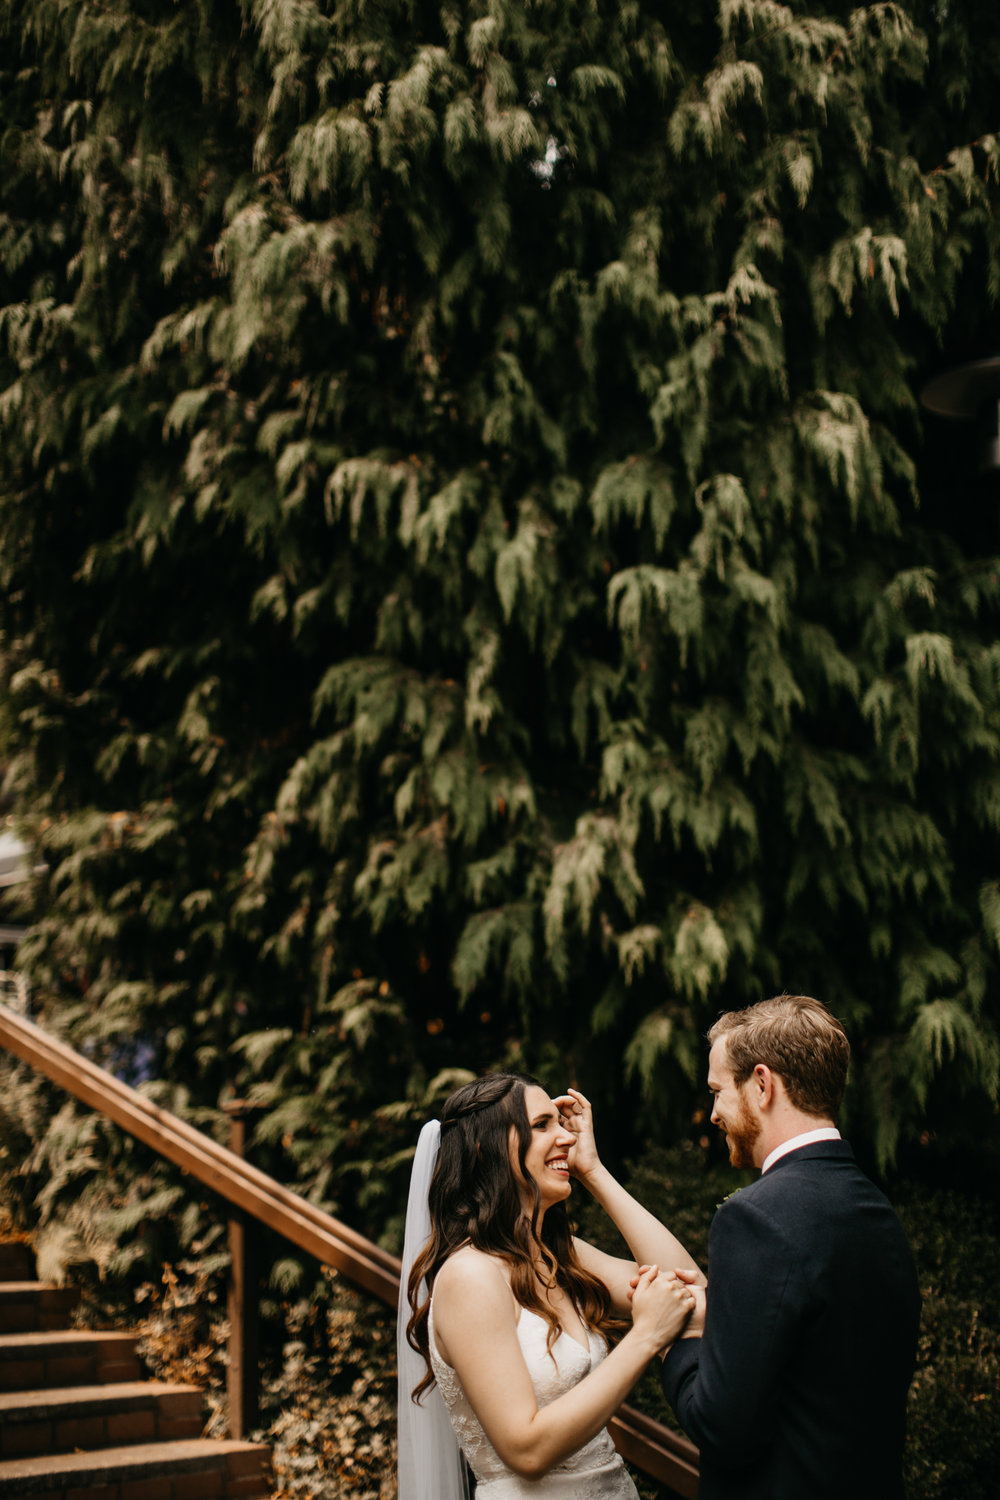 Max&SamPhoto_Seattle Wedding Photographer_Bellevue Robinswood House_037.jpg